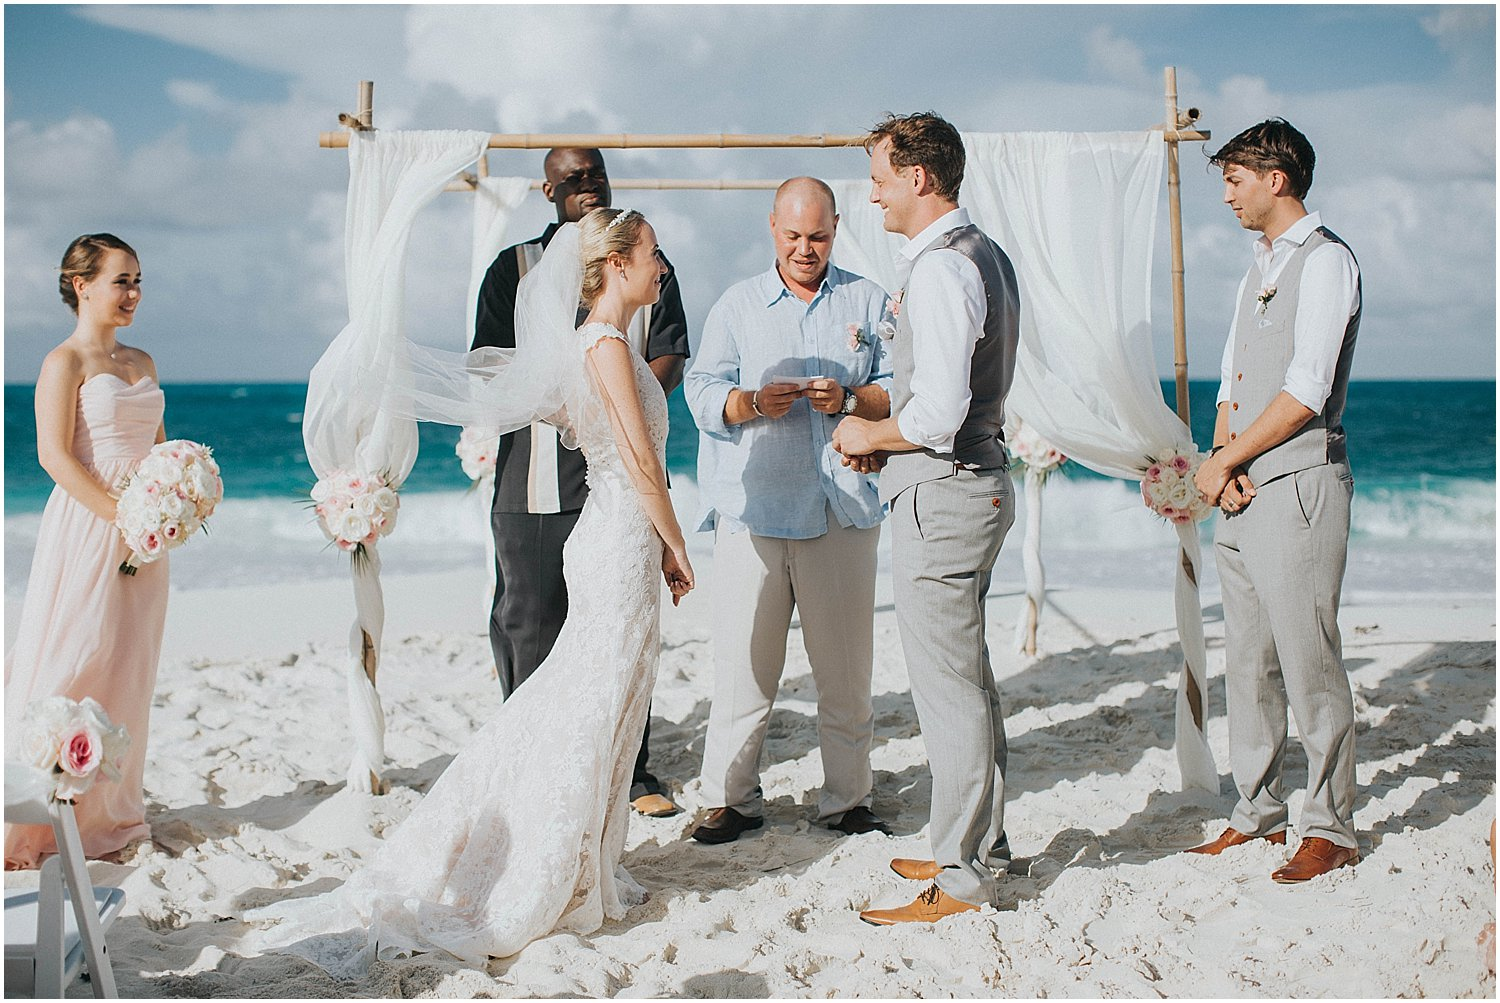 bahamas beach wedding